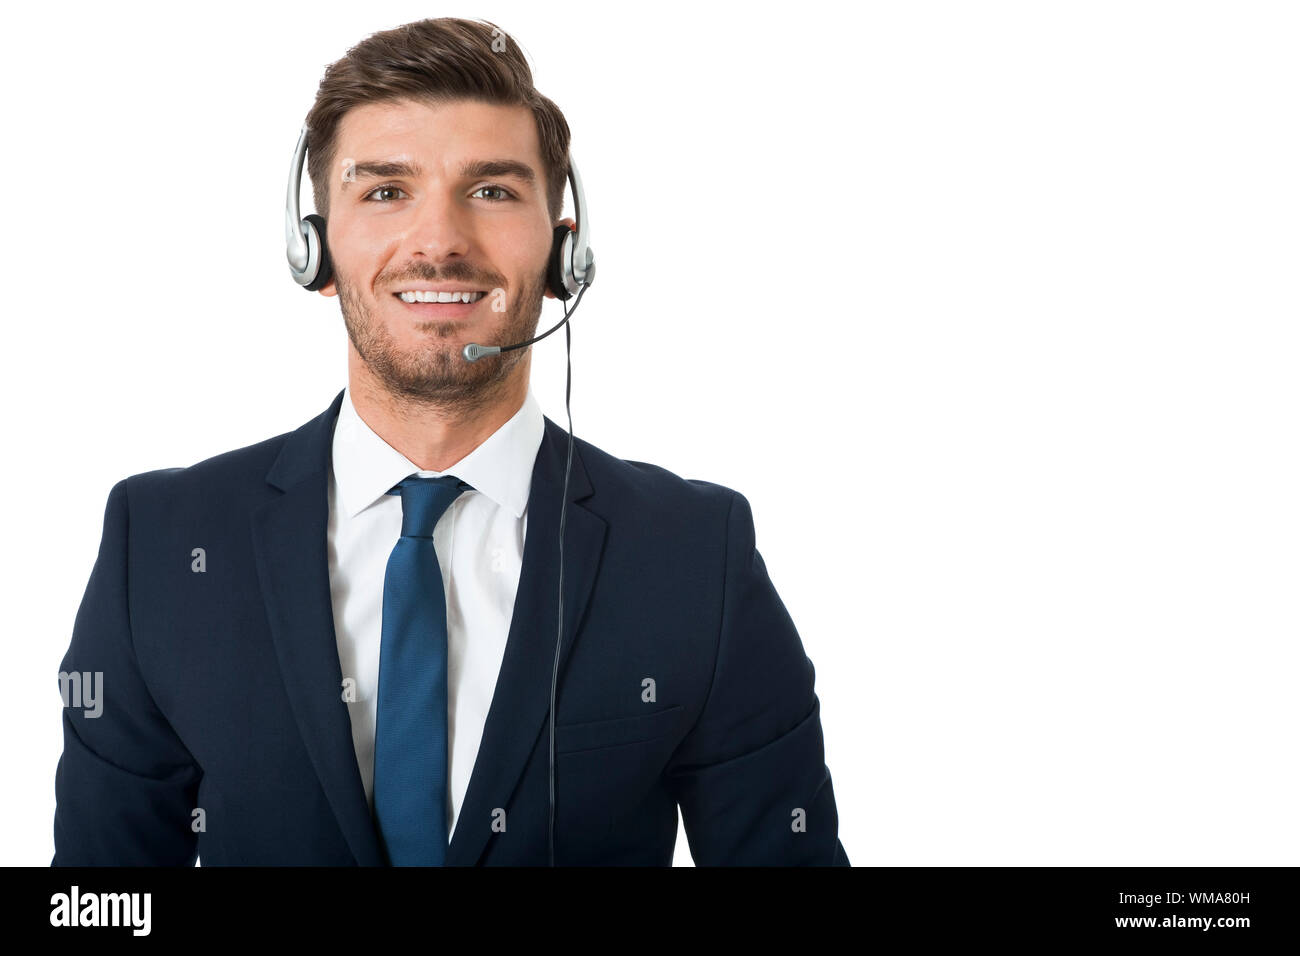 Young bearded handsome man wearing formal business suit and headset with stereo headphones and microphone while smiling at camera, portrait on white Stock Photo